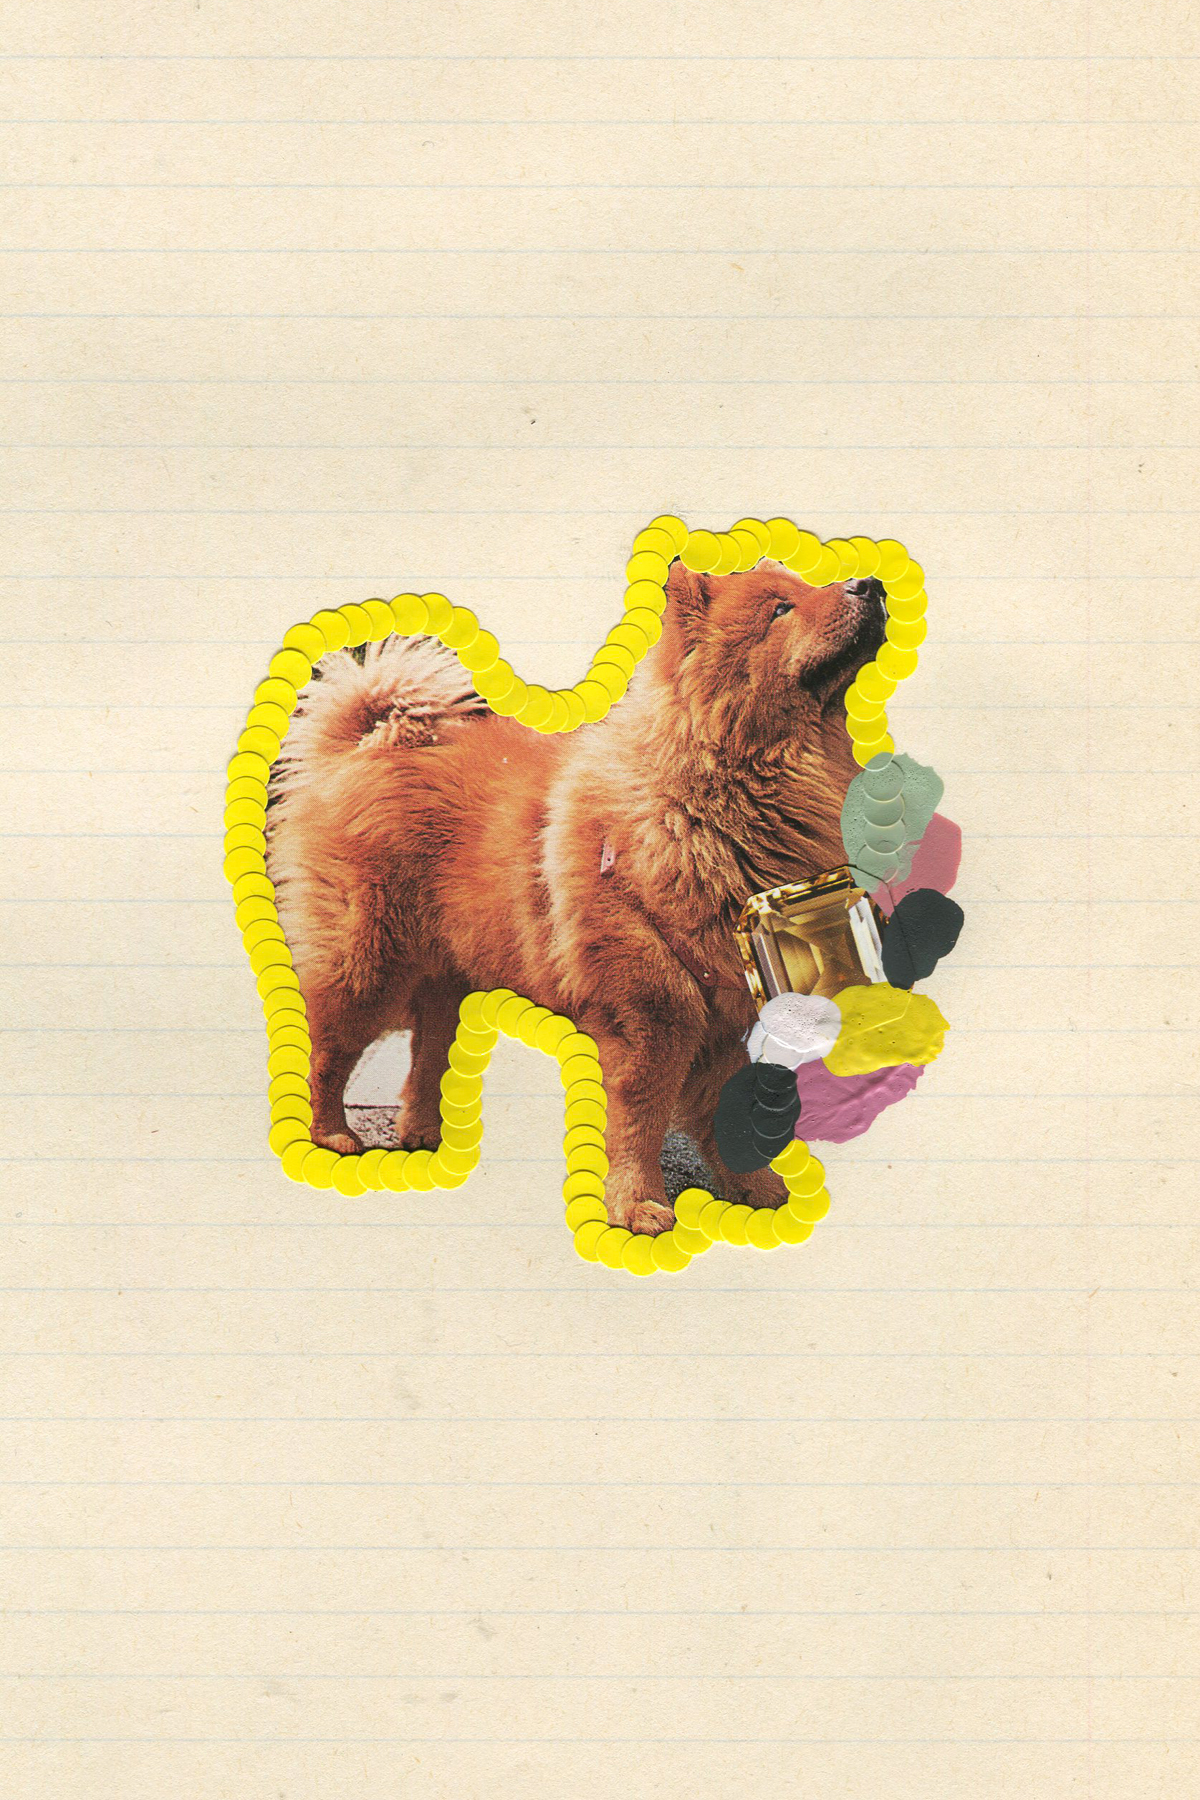 First Place Fluffy Puppy #5, 2017, collage, found paper, stickers, acrylic paint